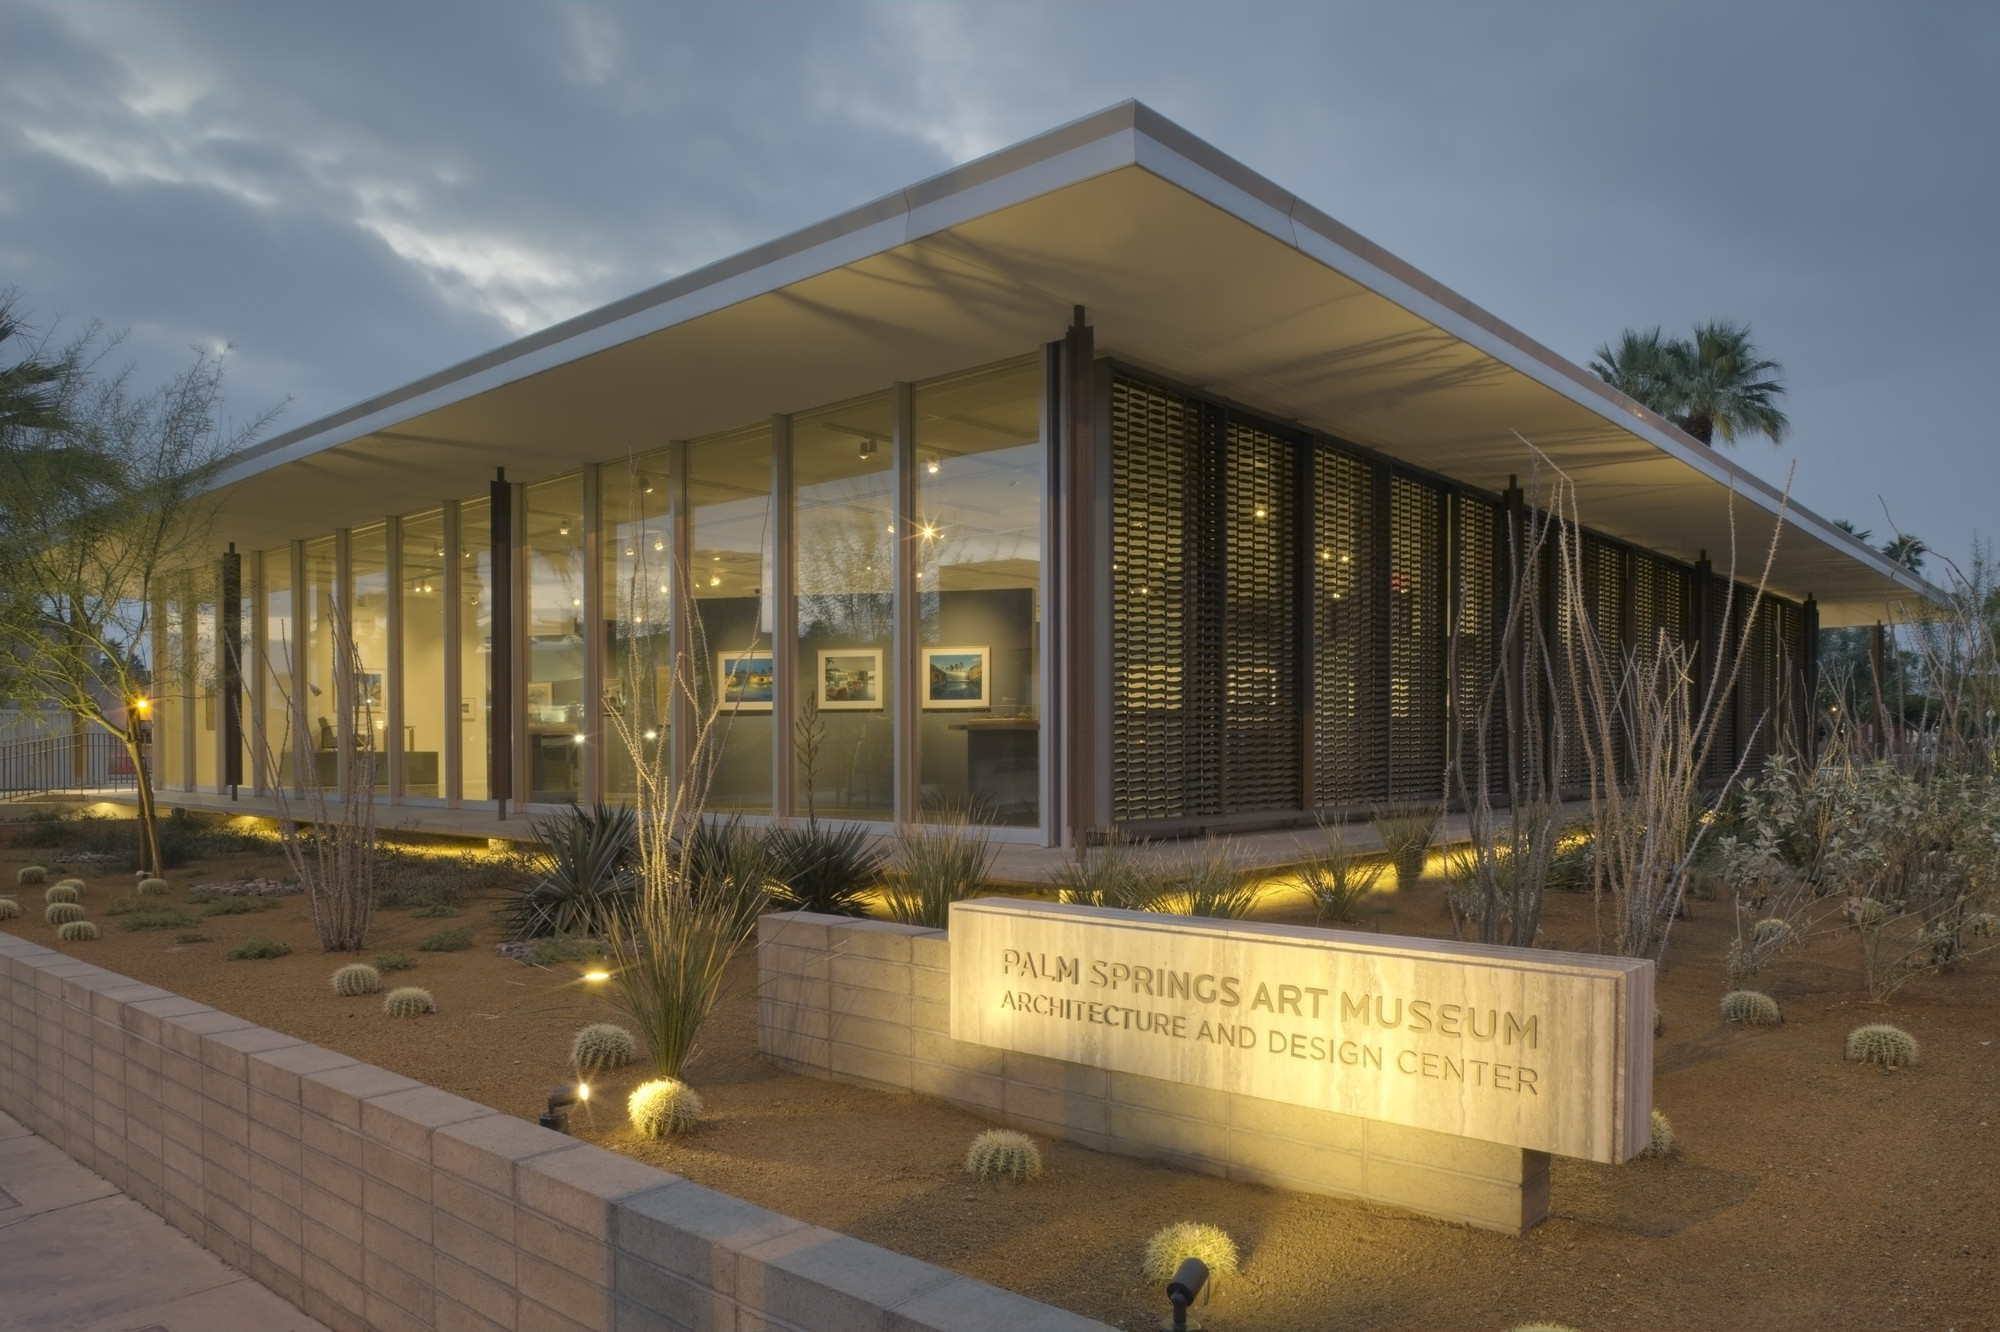 Palm Springs Art Museum Architecture and Design Center, Edward Harris Pavilion. Image © David Glomb